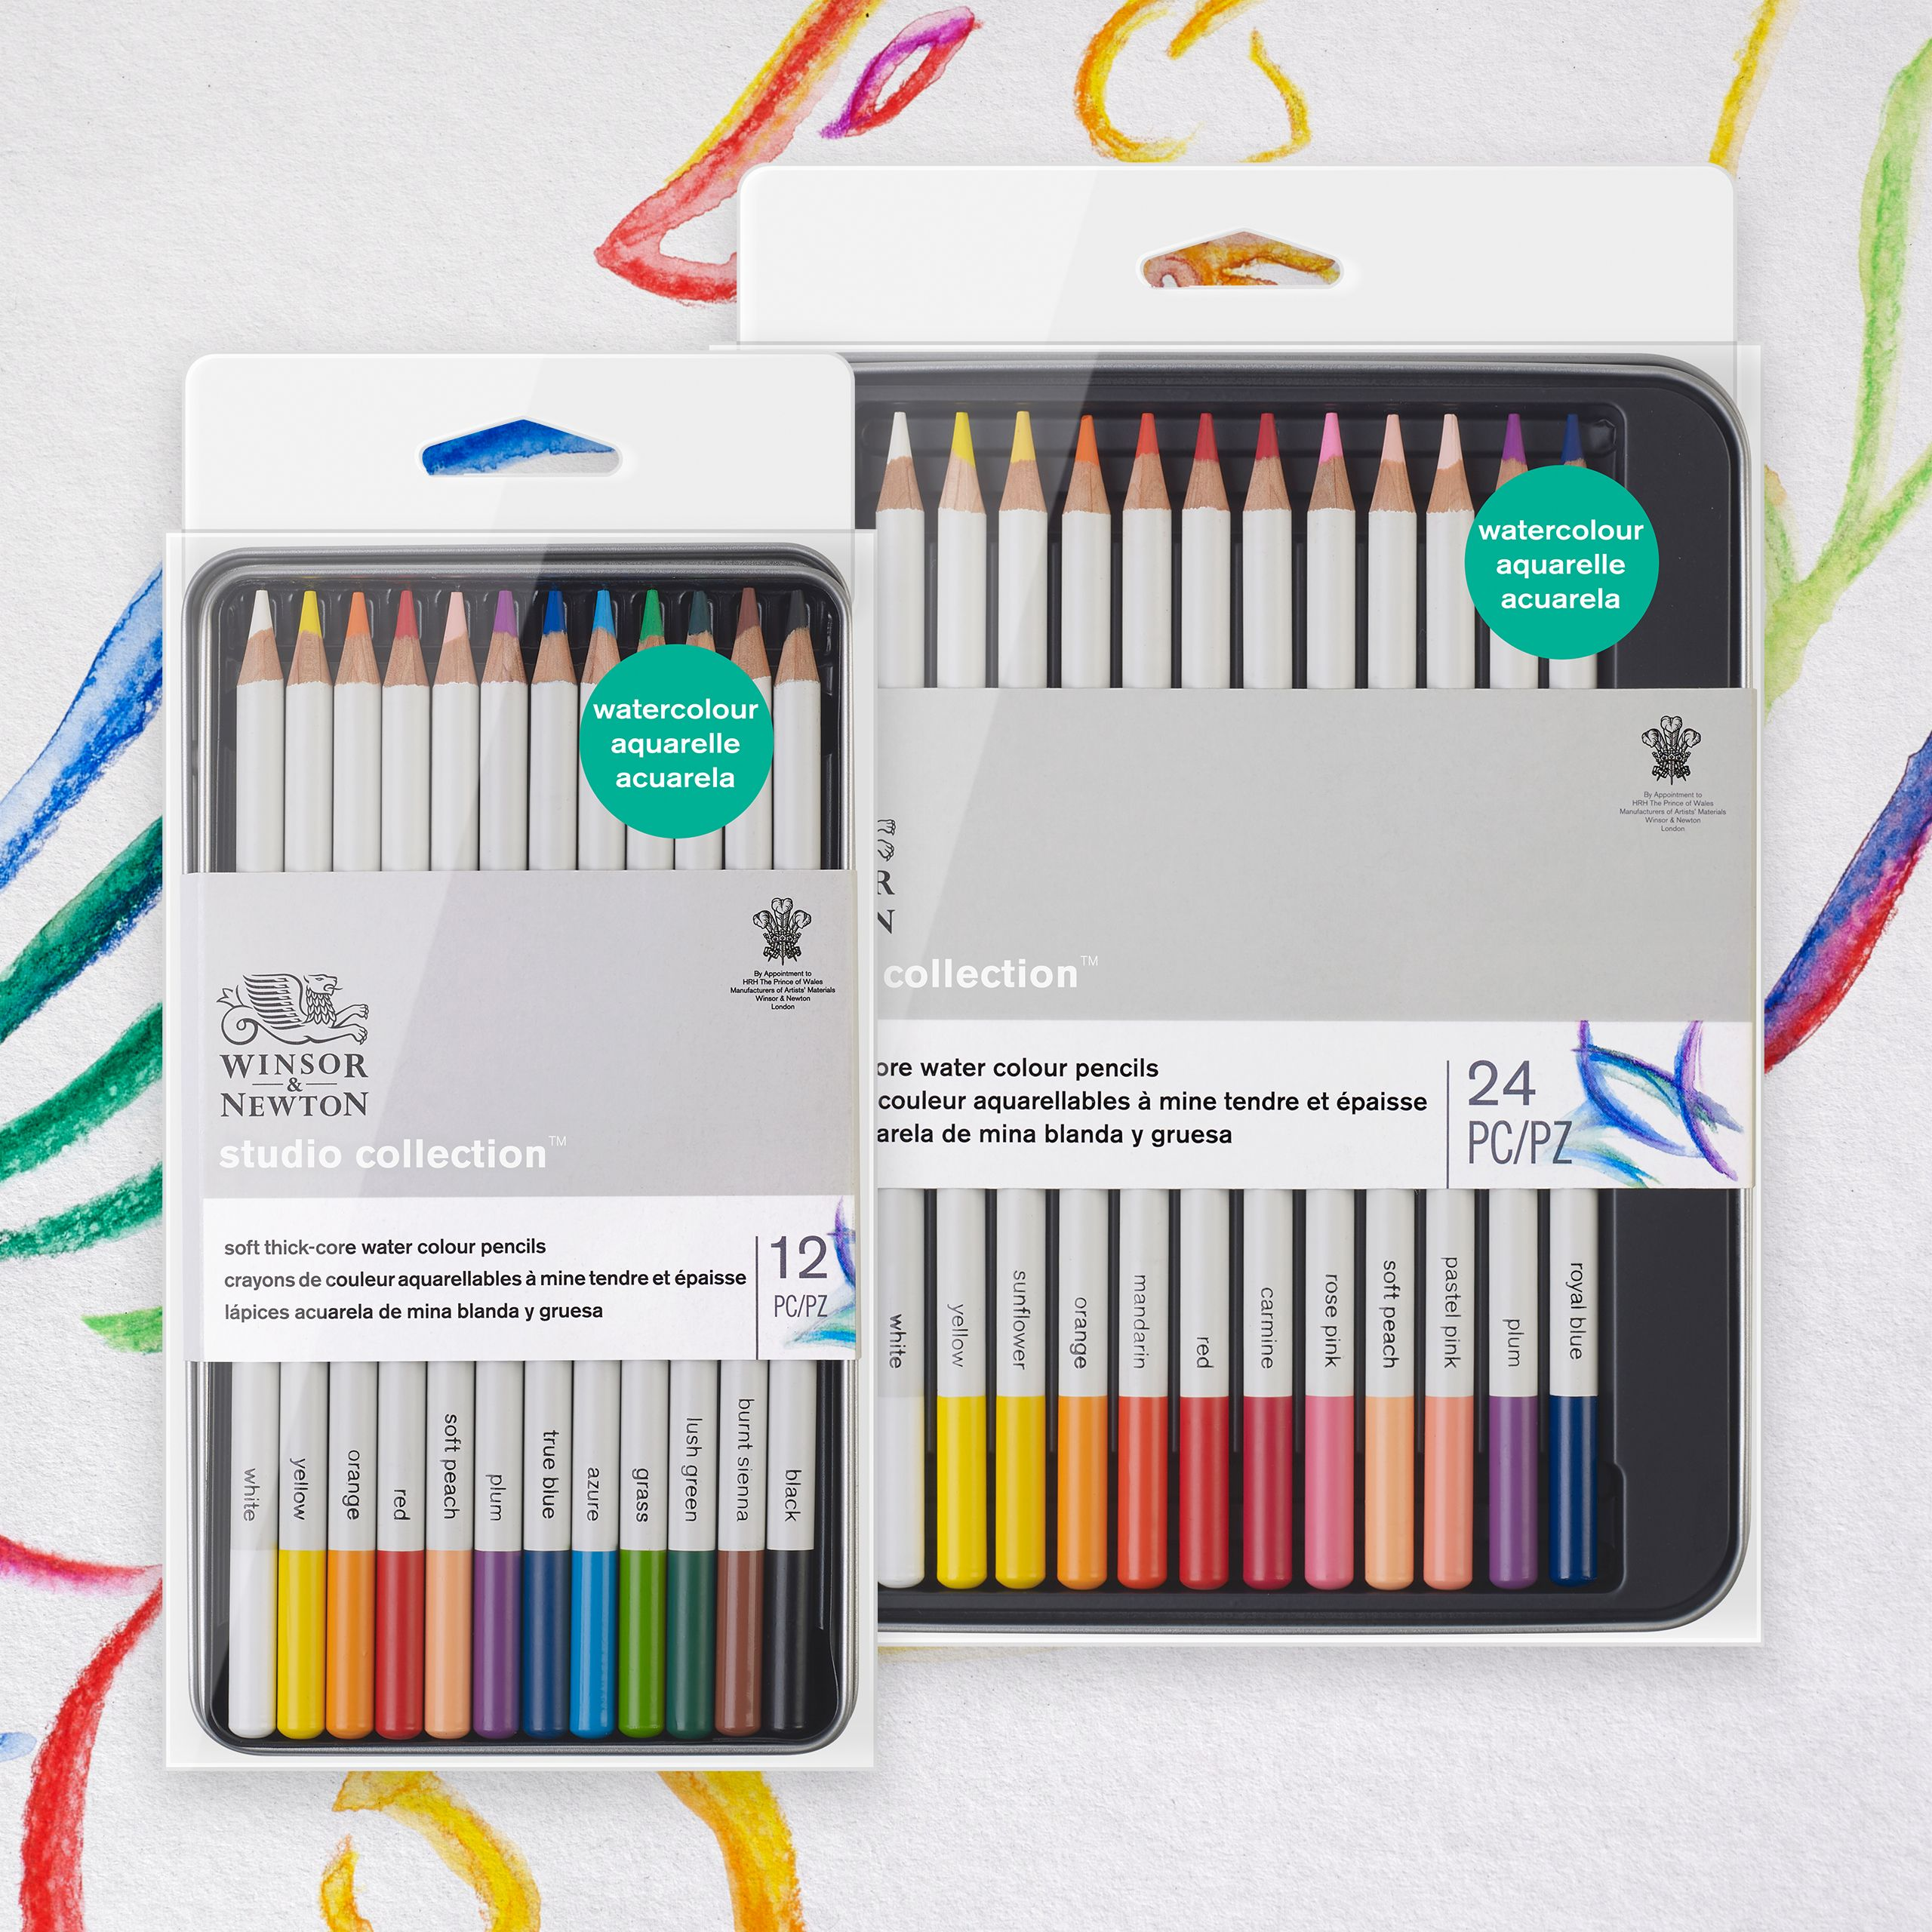 Winsor Newton Studio Collection Water Colour Pencil Sets